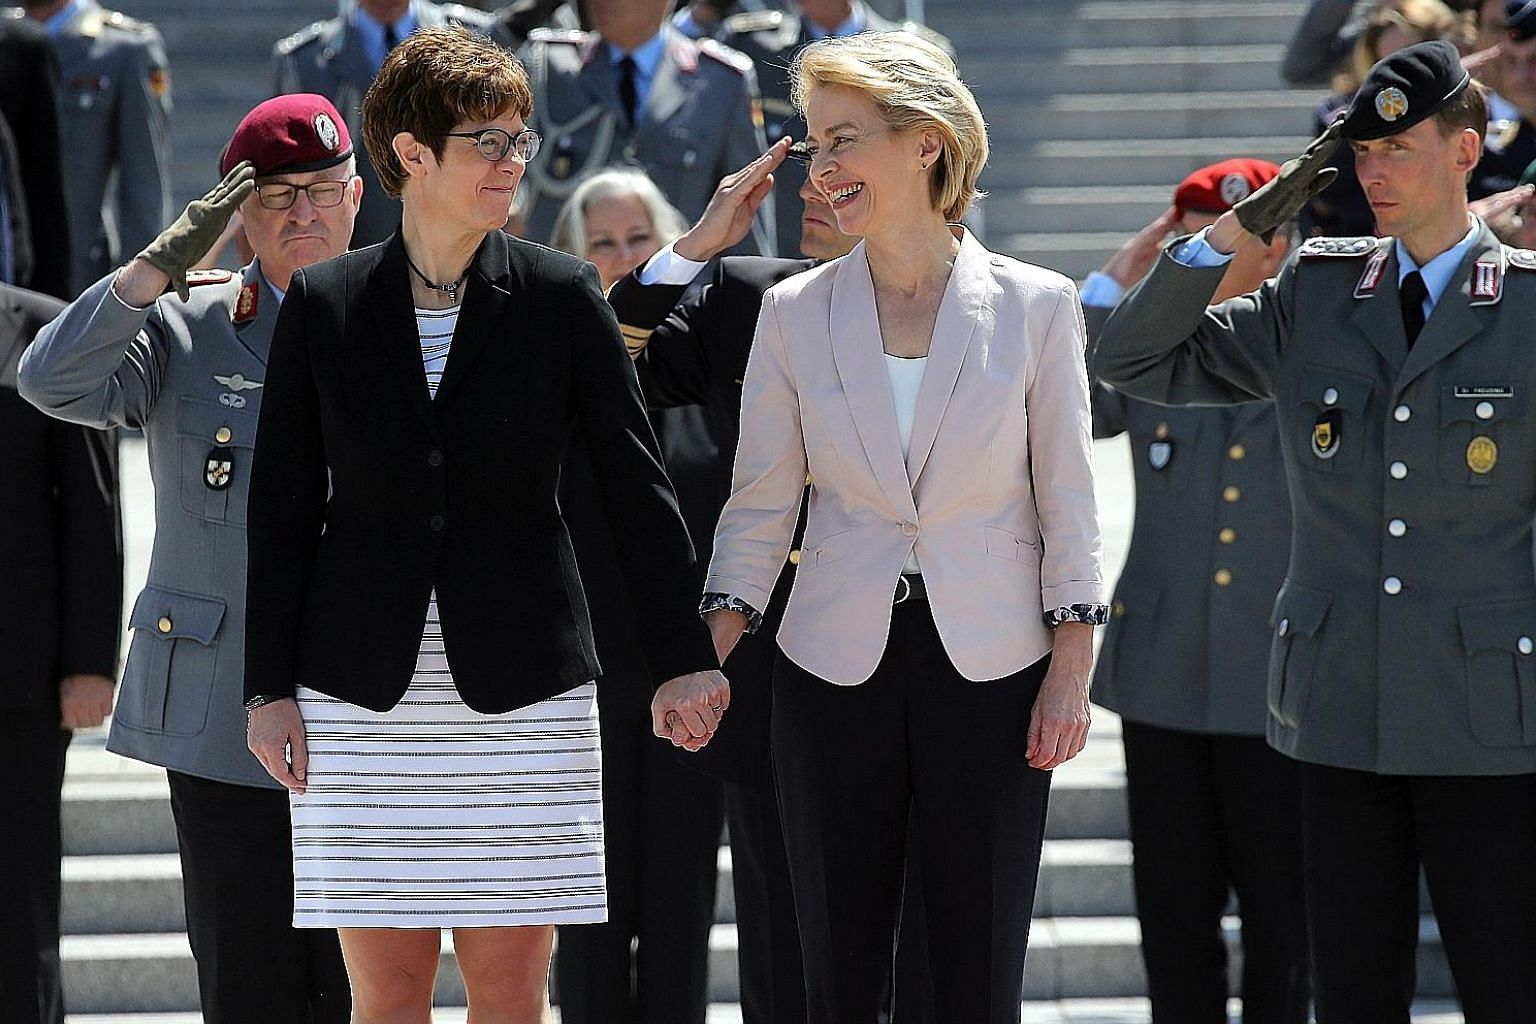 Dr Ursula von der Leyen (right), outgoing German defence minister and newly elected president of the European Commission, with Ms Annegret Kramp-Karrenbauer, the chairman of the Christian Democratic Union who takes over the defence post, during an in